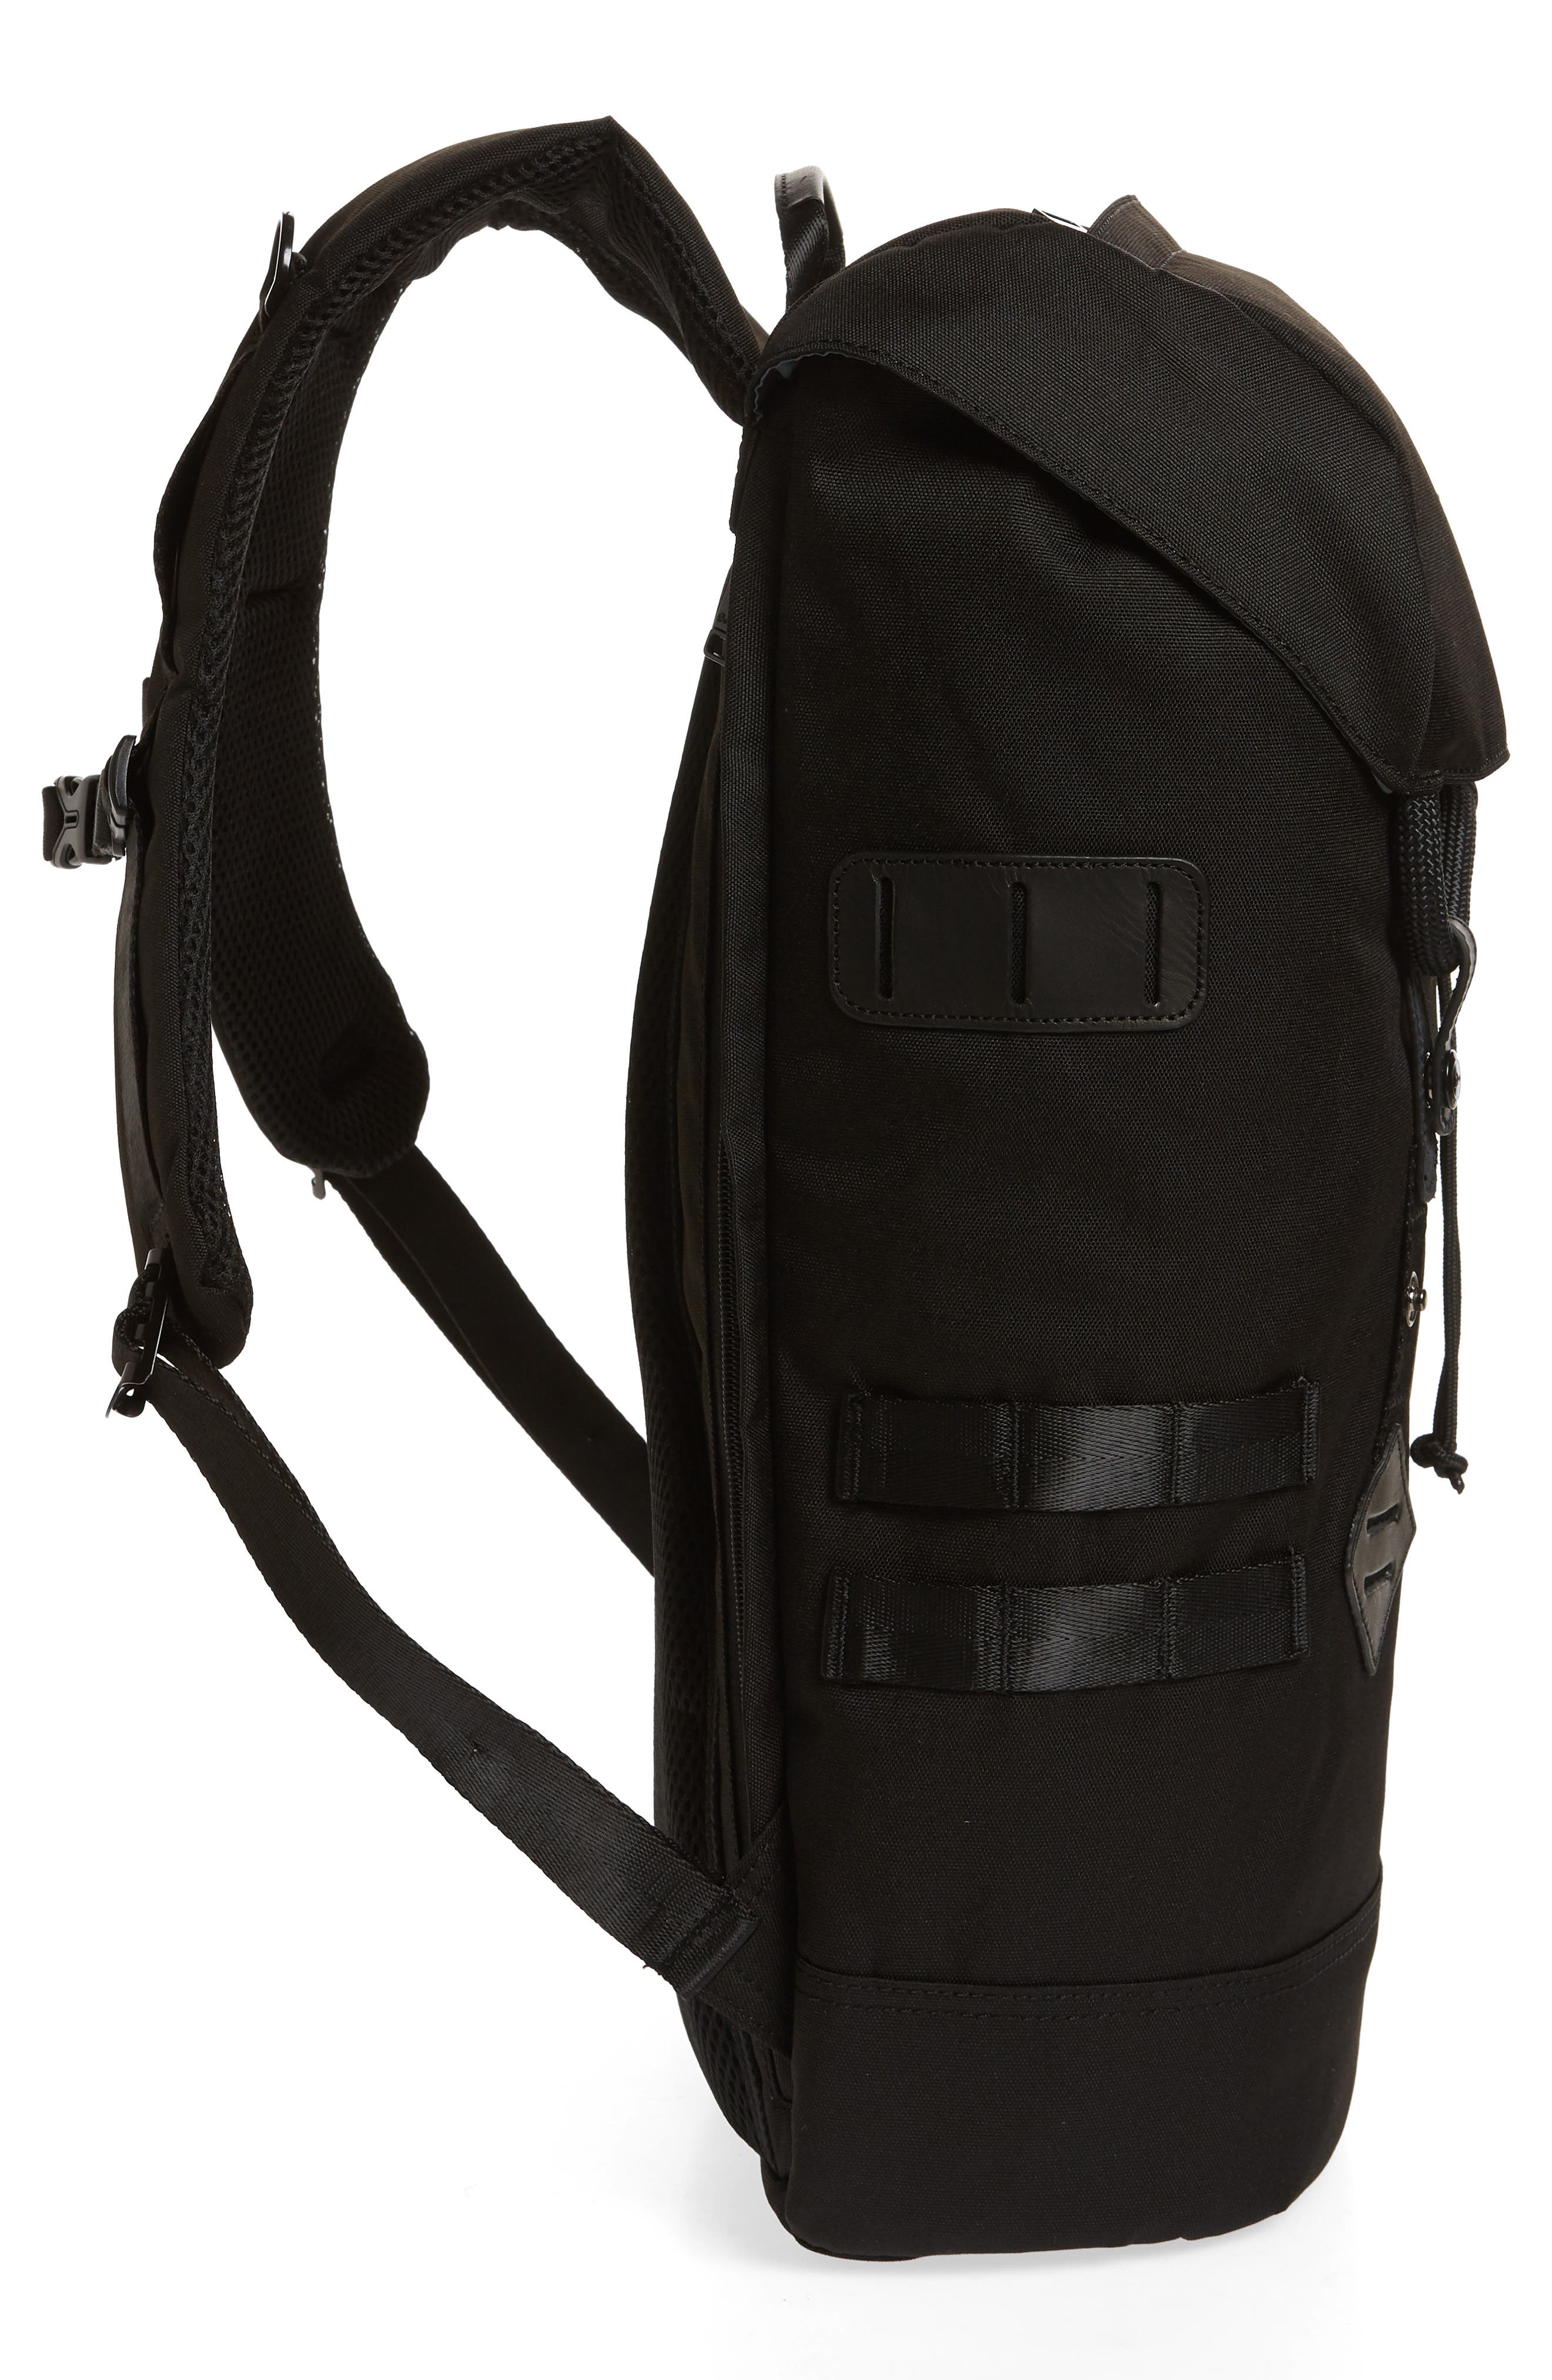 Colorado Black Series Water Repellent Backpack,                             Alternate thumbnail 5, color,                             BLACK